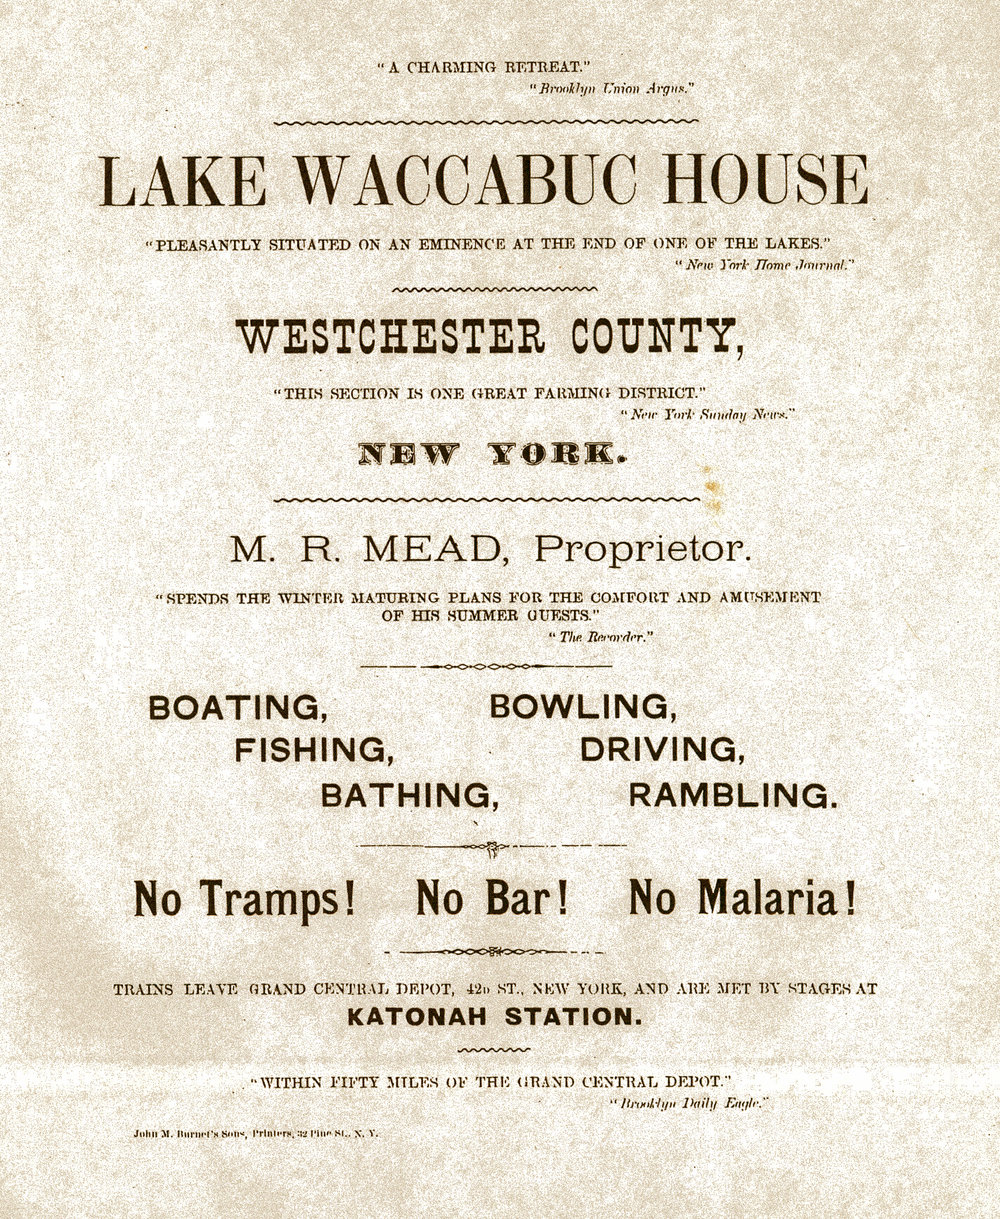 Advertising flyer for the Waccabuc Hotel